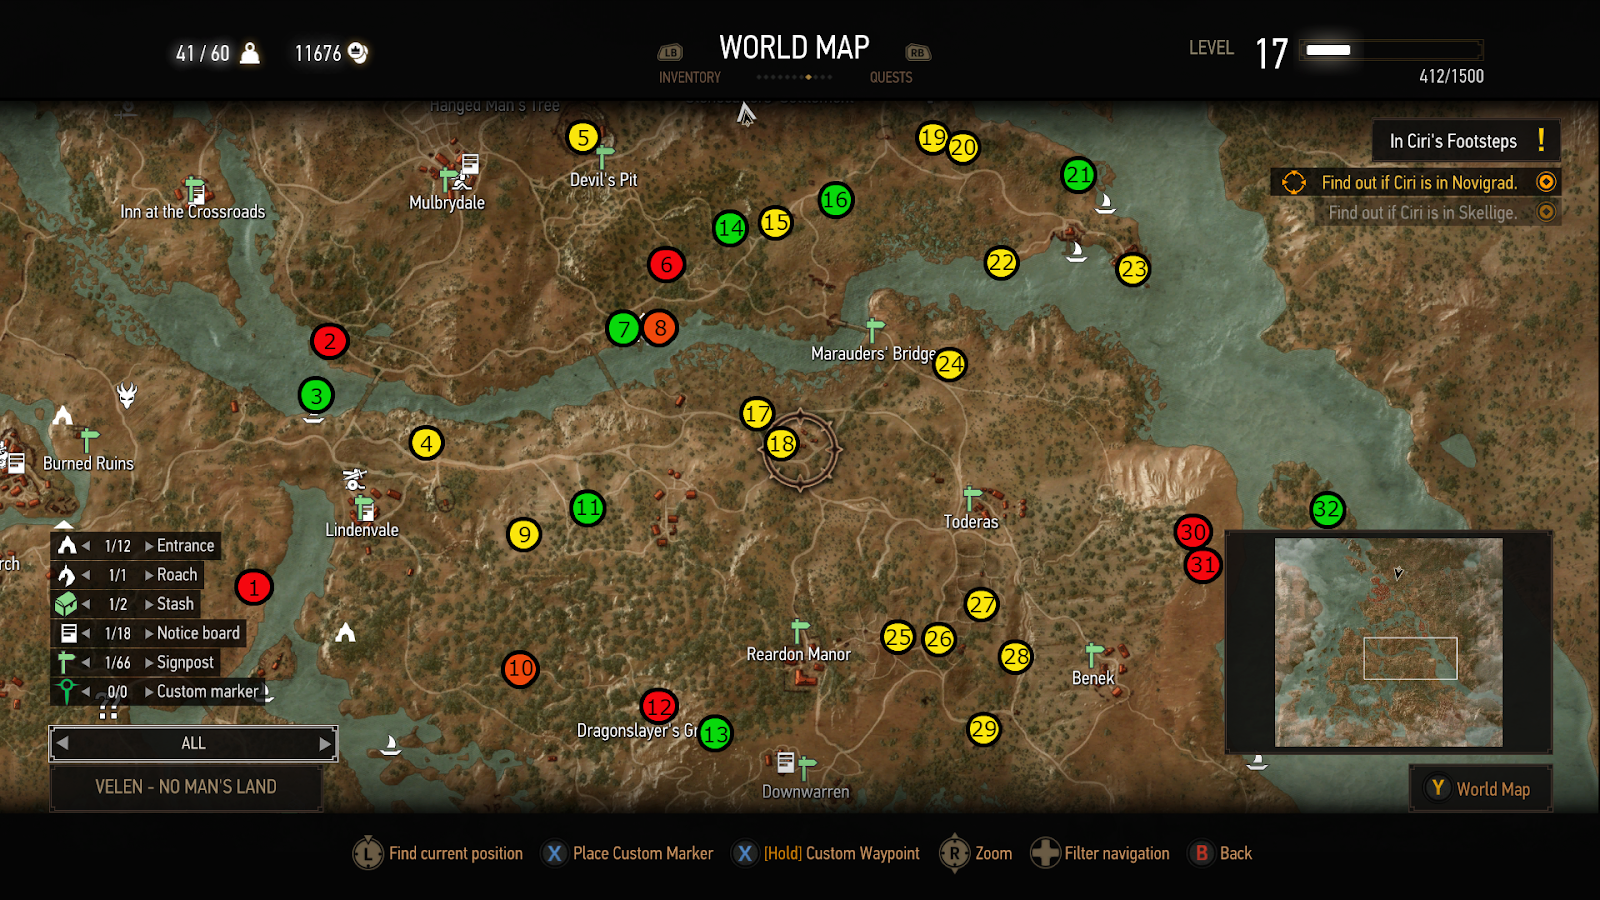 The Witcher 3 Maps